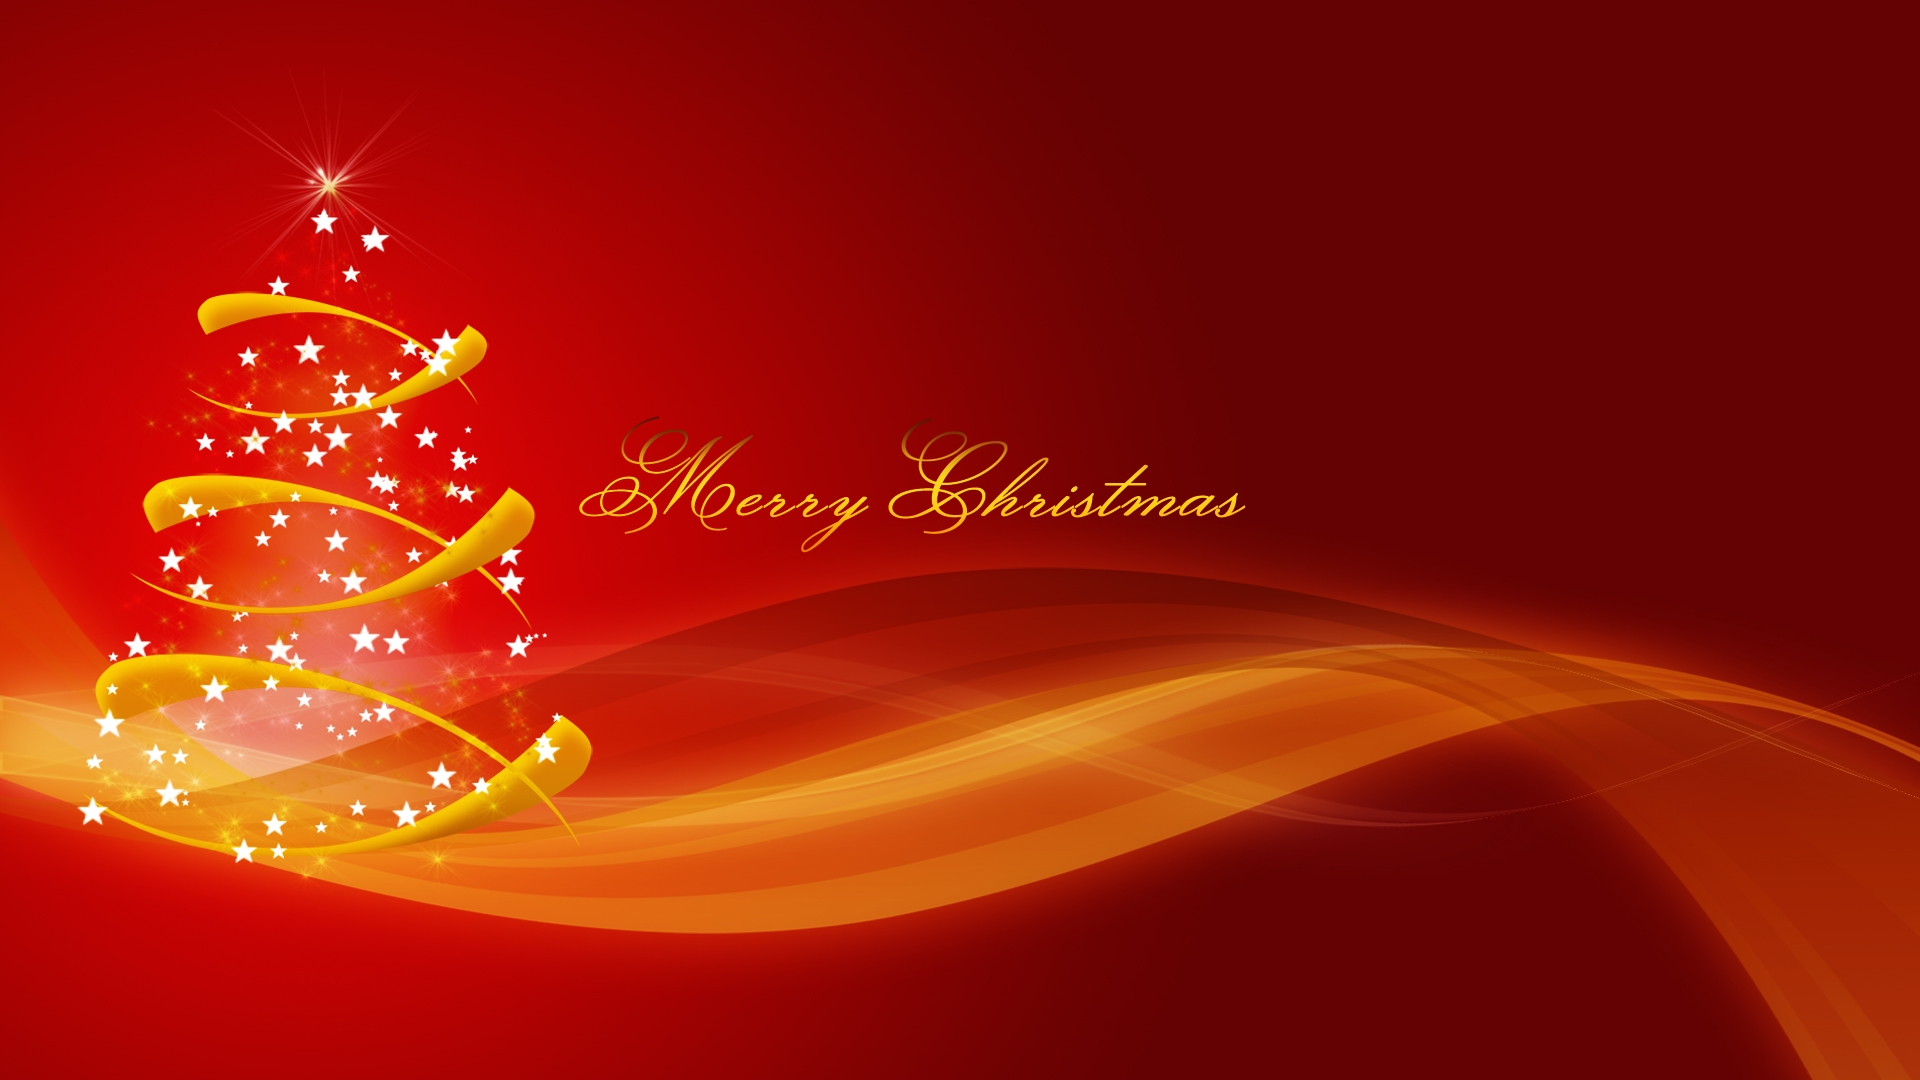 Christmas Desktop Wallpaper 1080p 1920x1080